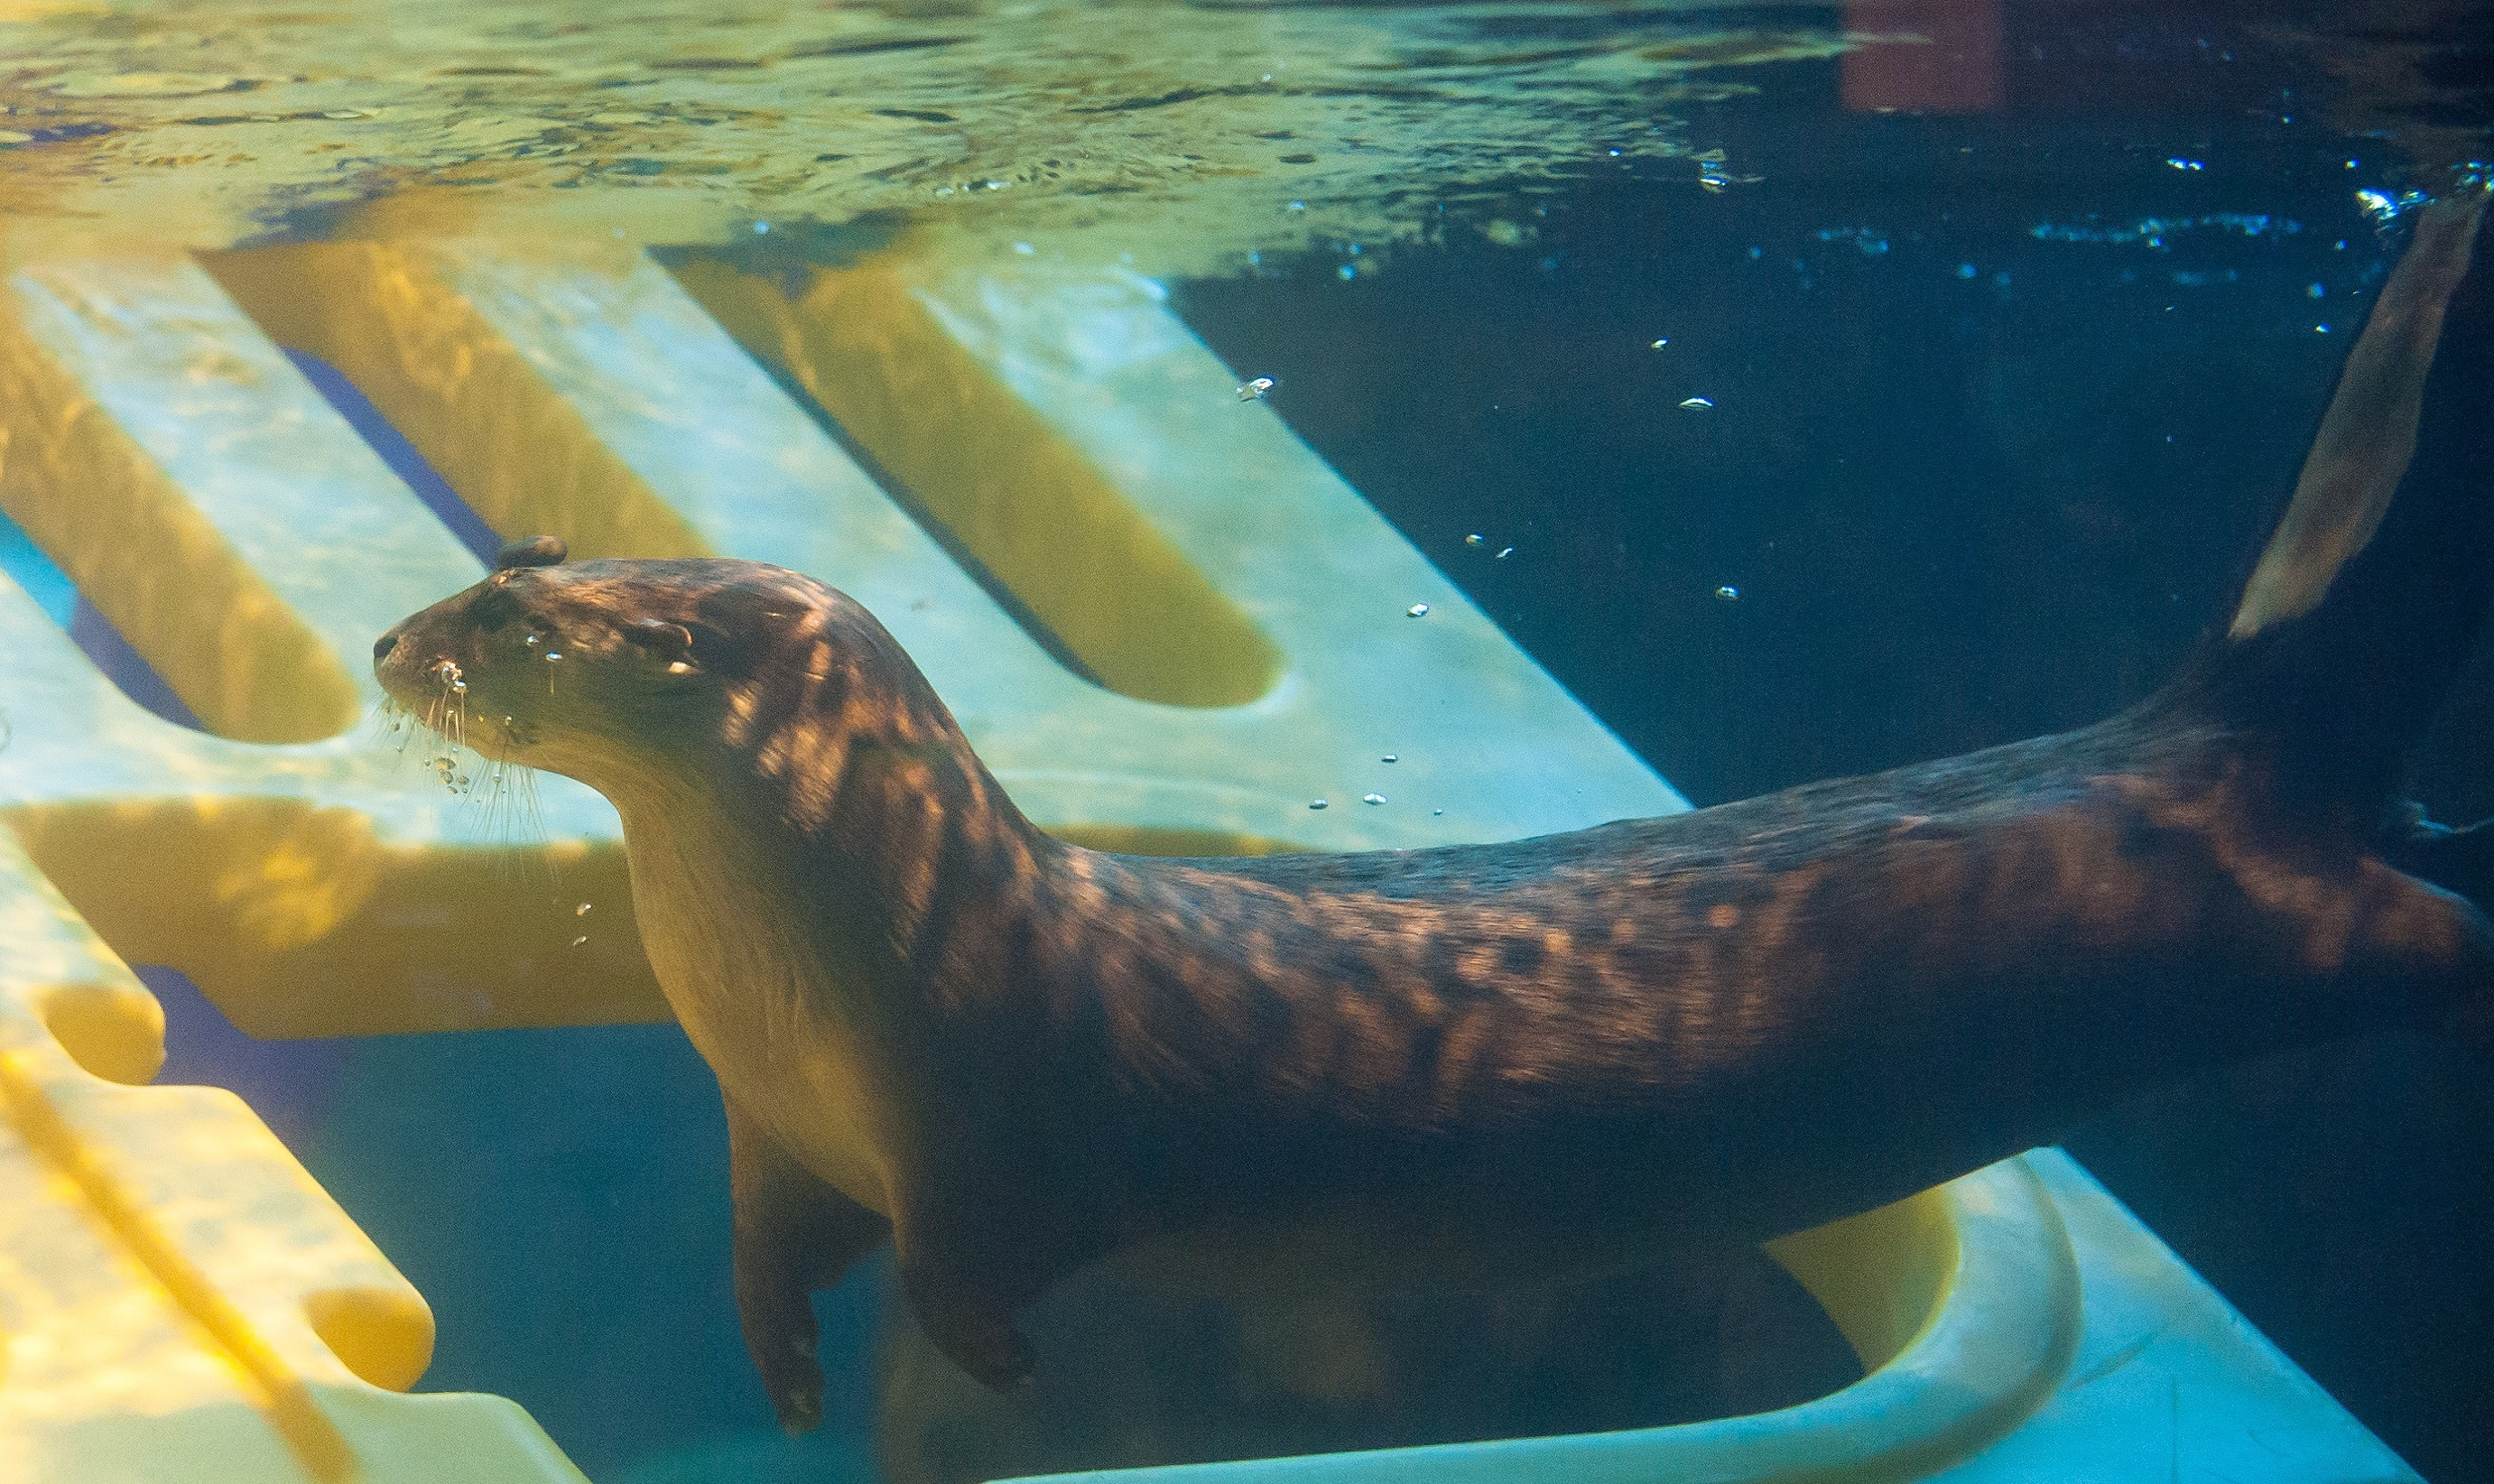 River otter with enrichment object underwater